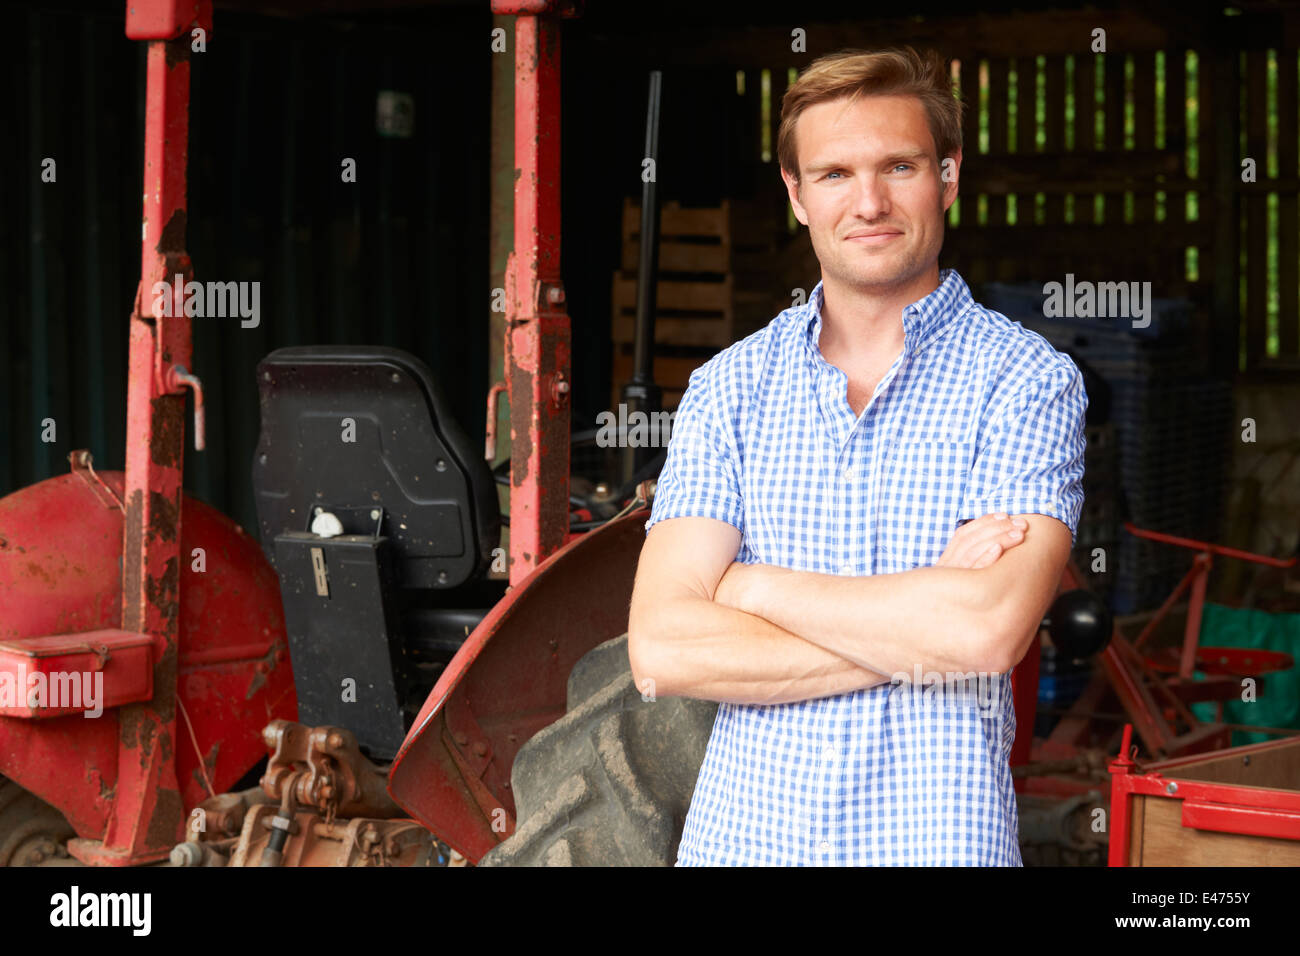 Farmer Standing Next To Old Fashioned Tractor In Barn - Stock Image